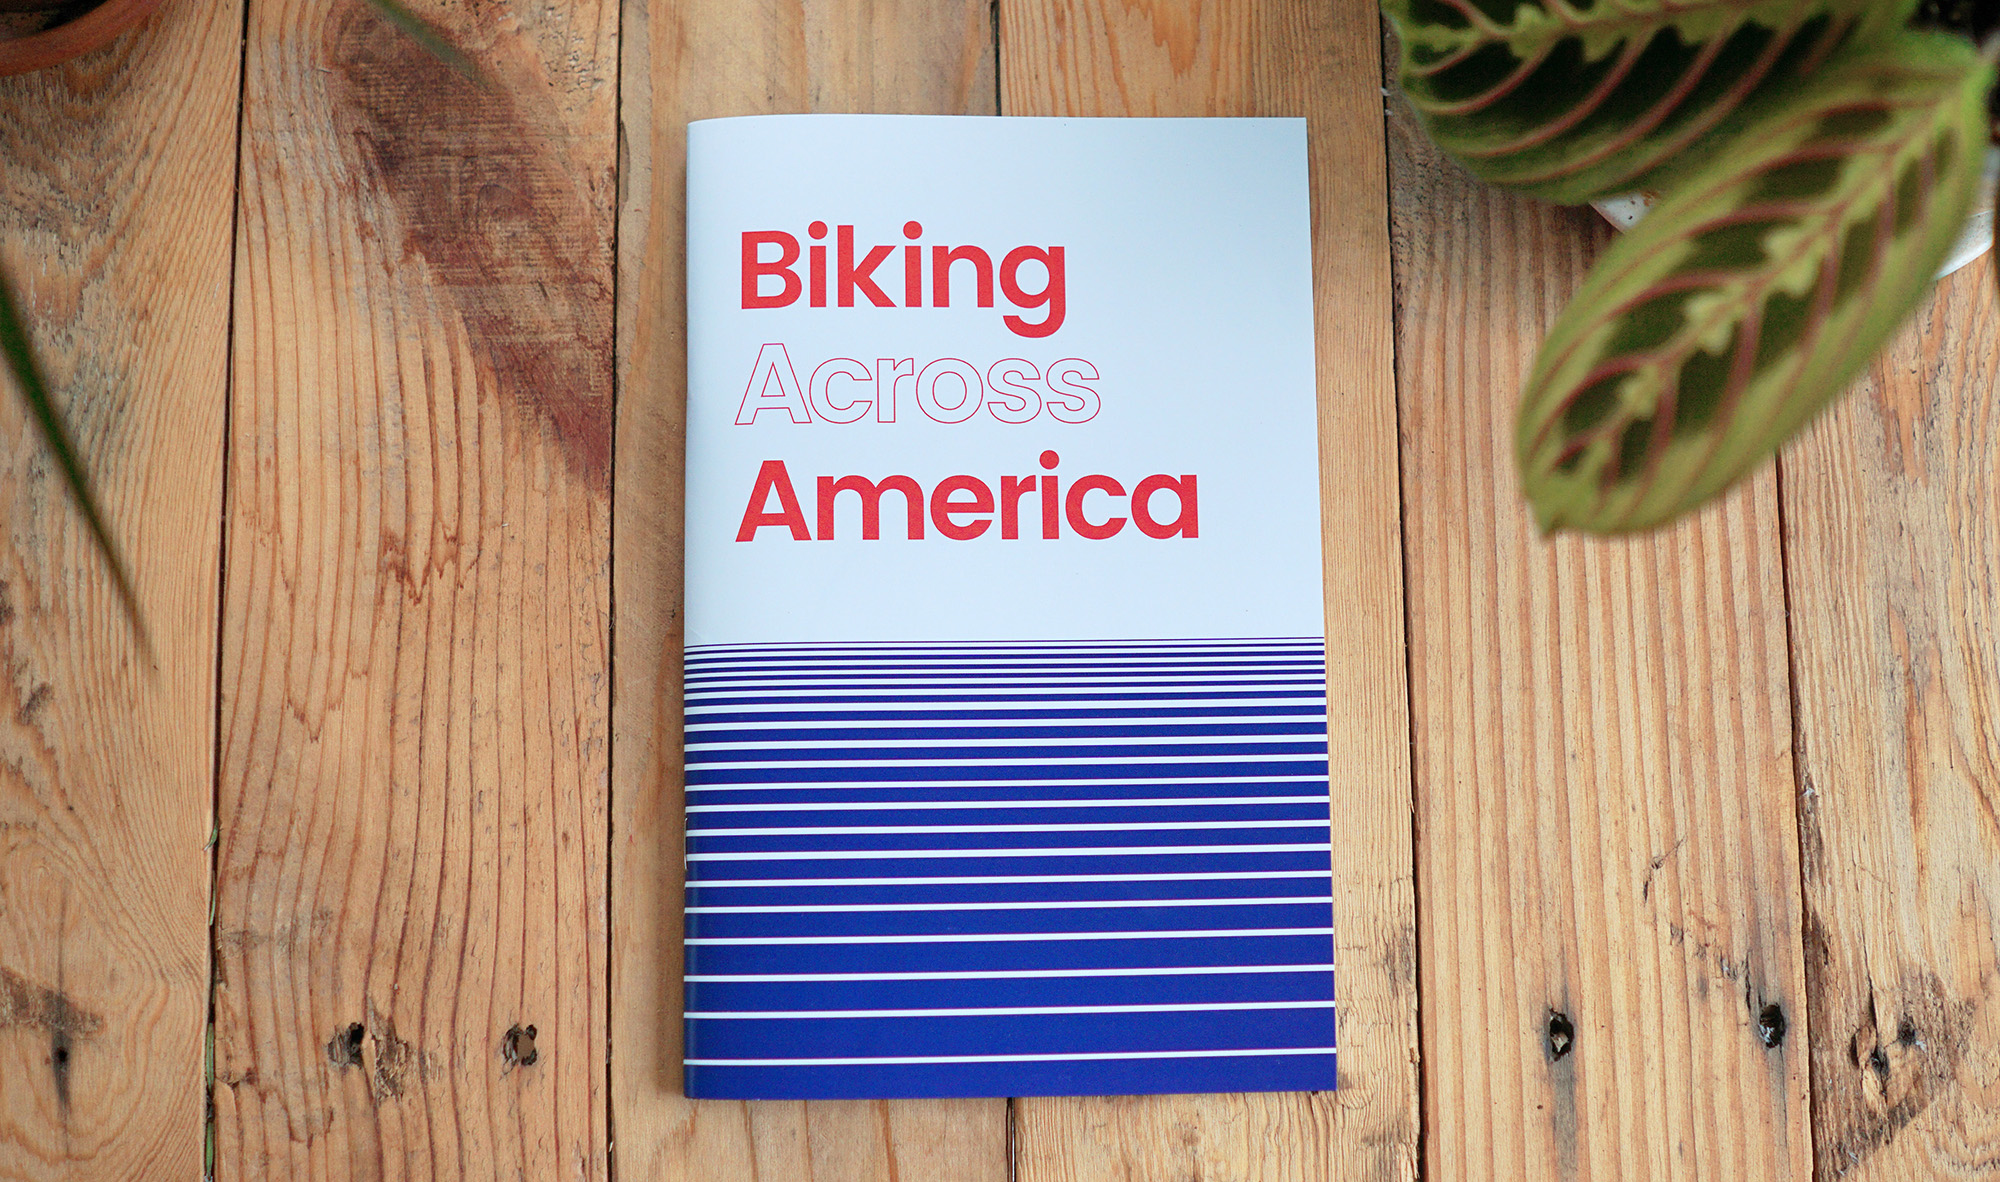 Bike-Across-America-Zine-00